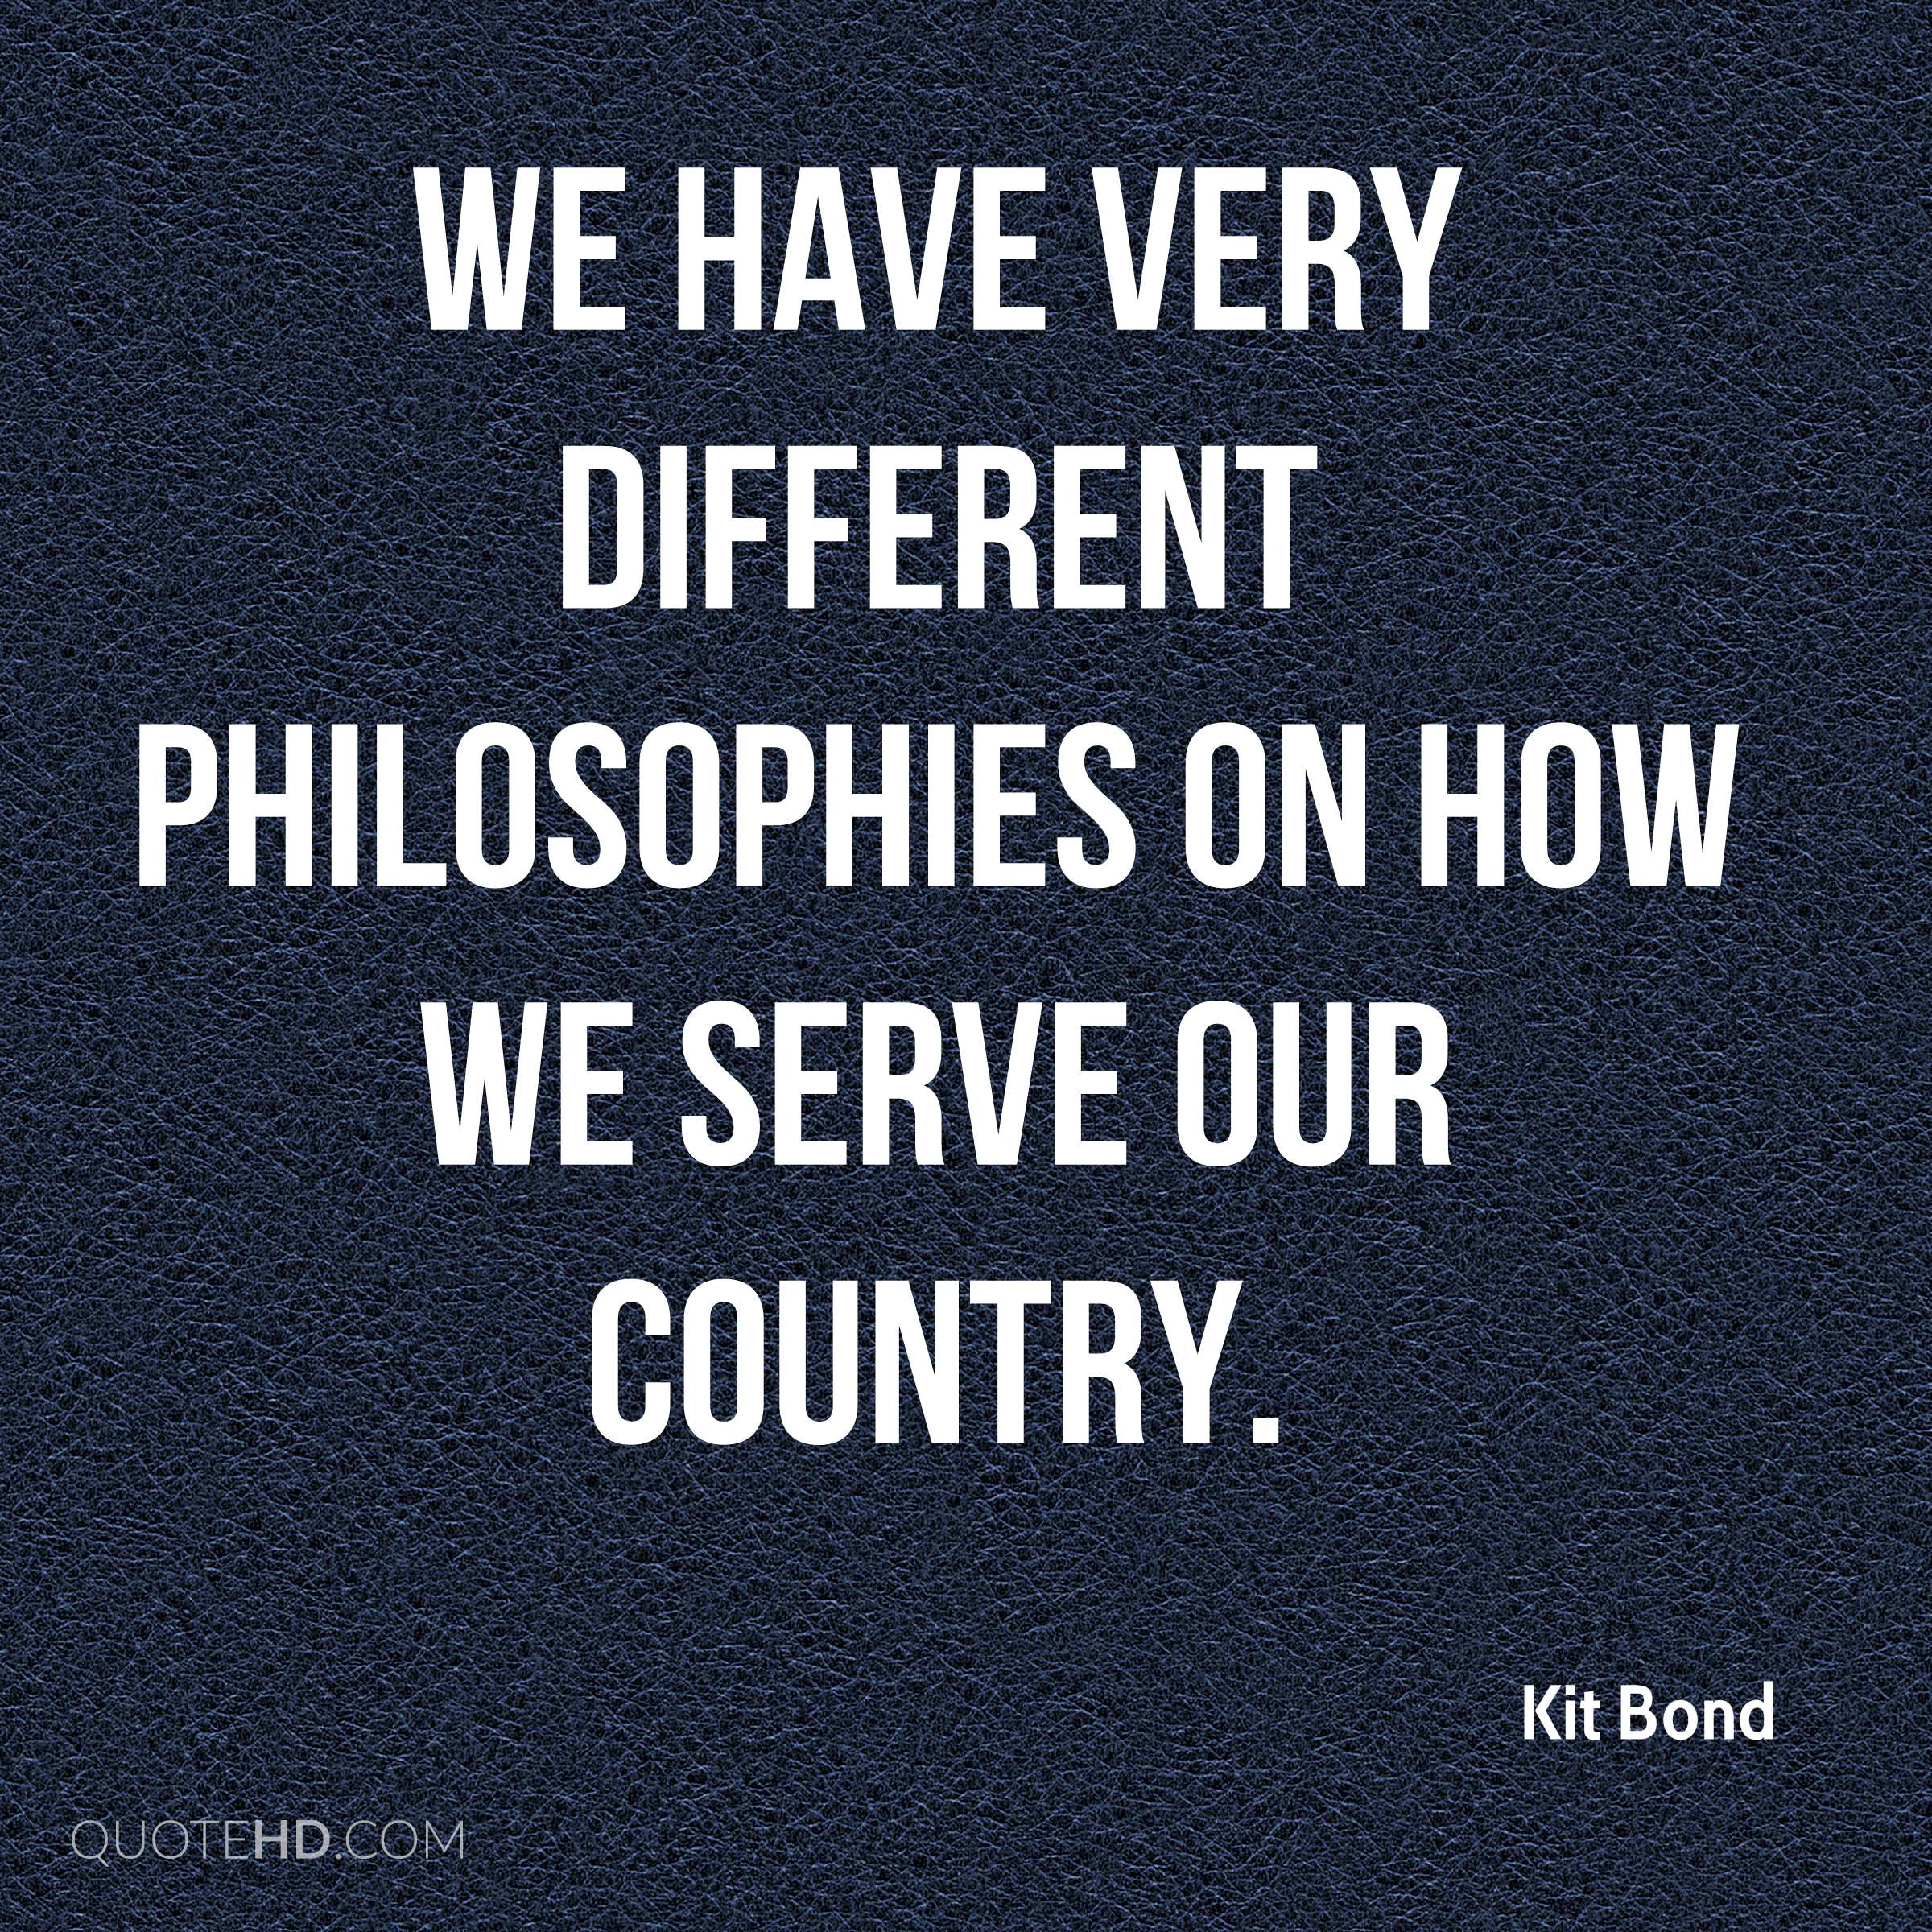 We have very different philosophies on how we serve our country.